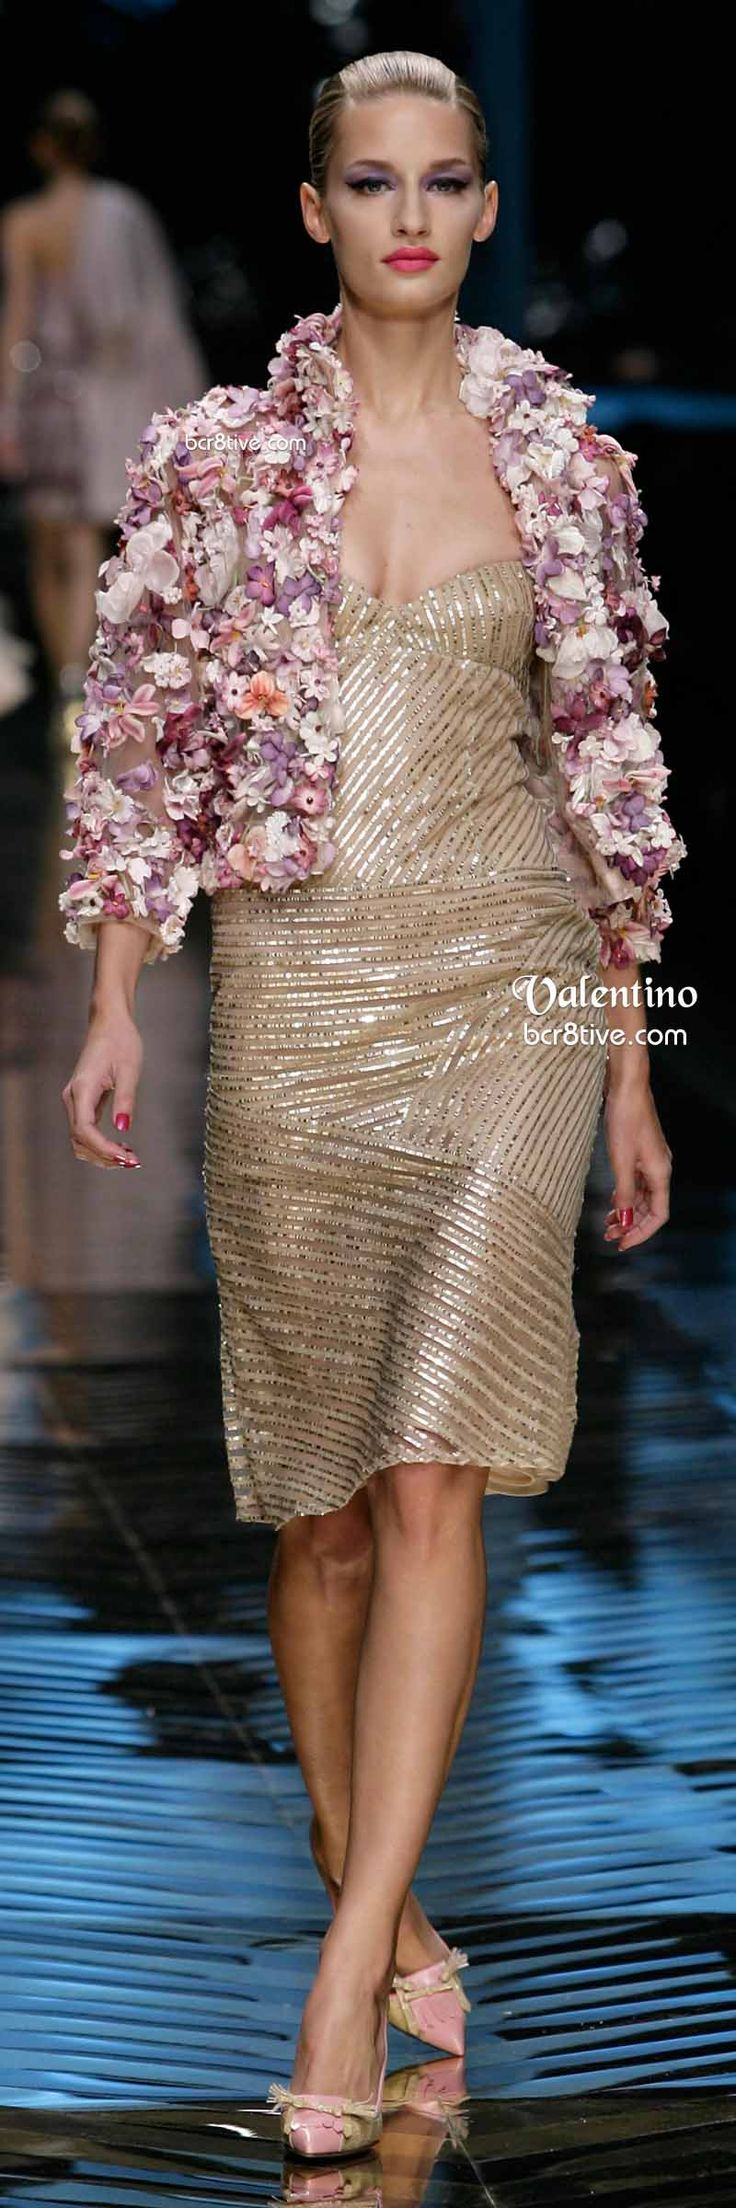 Valentino Floral Applique Jacket and Gold Beaded Dress